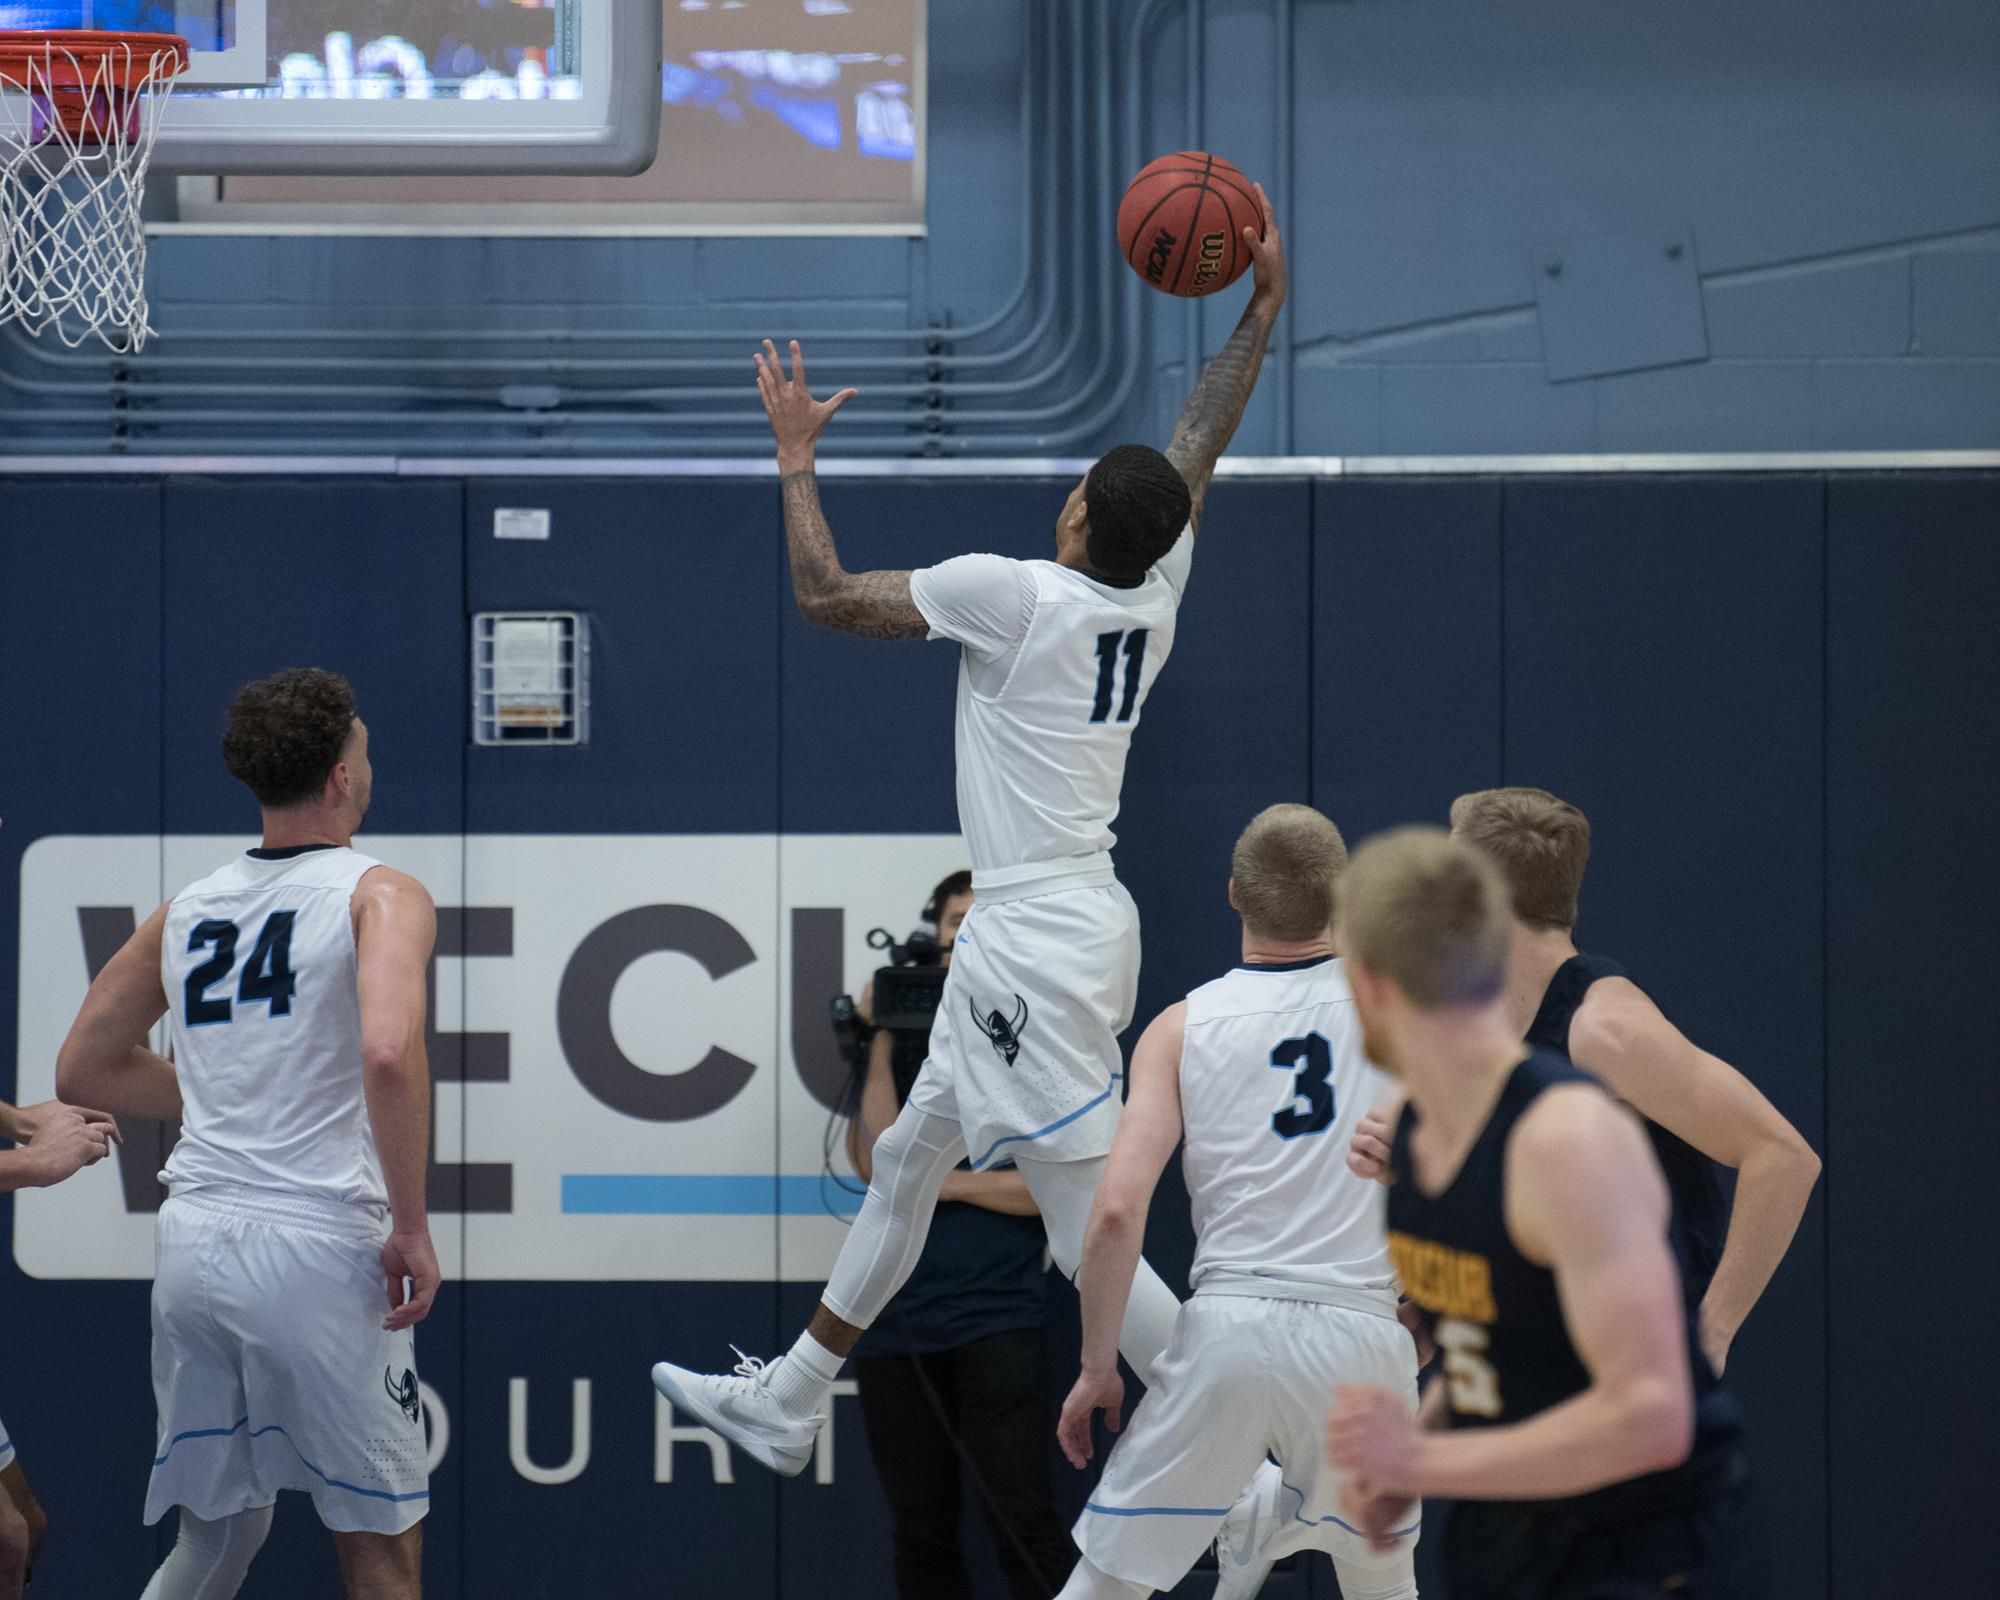 Elijah Cotton-Welch - Men's Basketball - Western Washington